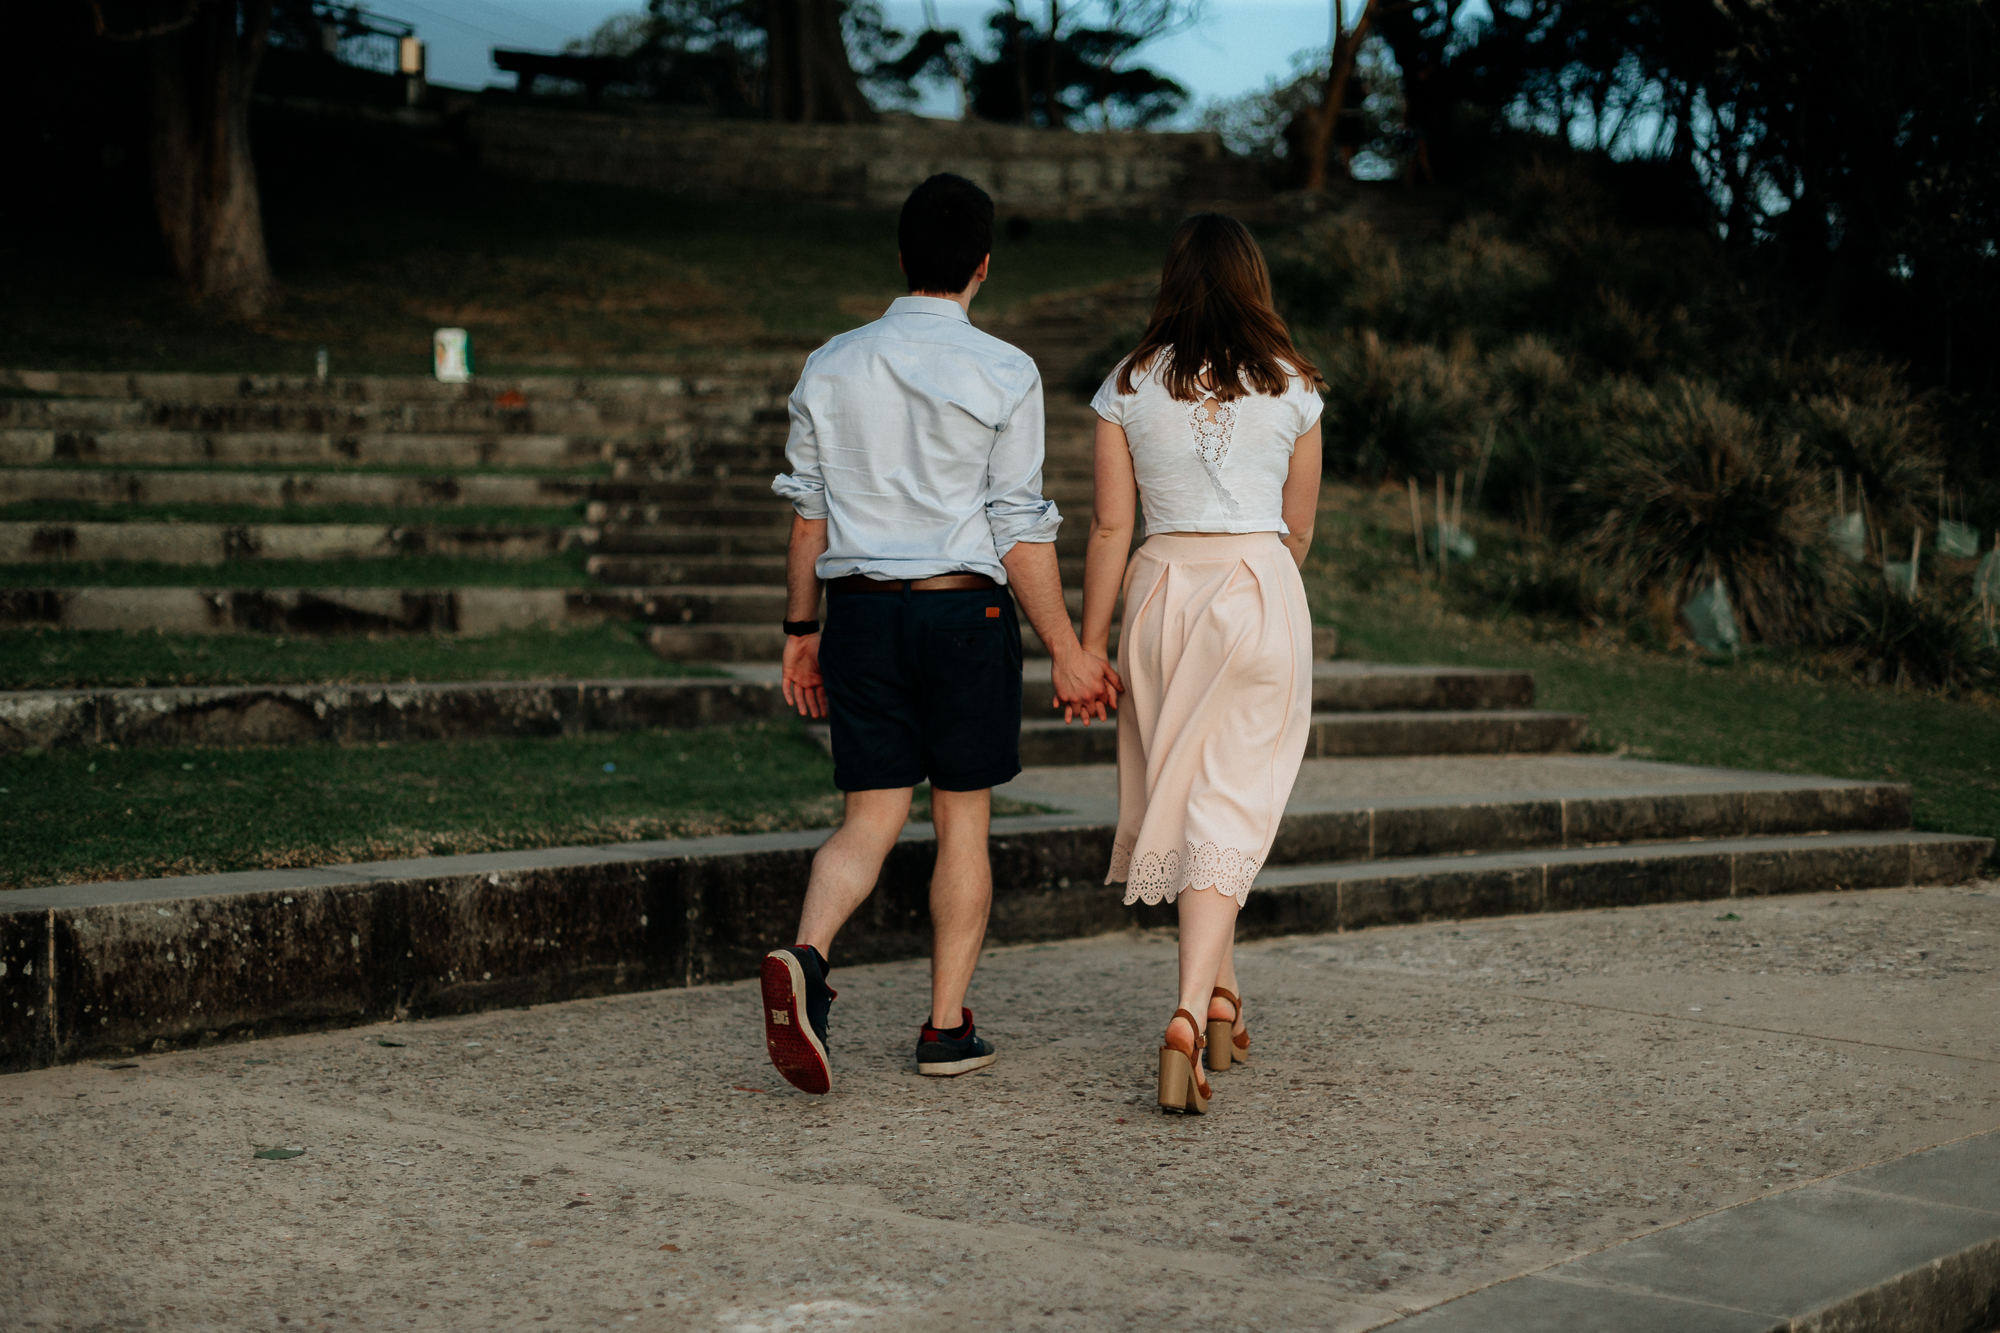 Amanzi and Steven_Engagement_Sydney_Holly Medway Photography-68.JPG